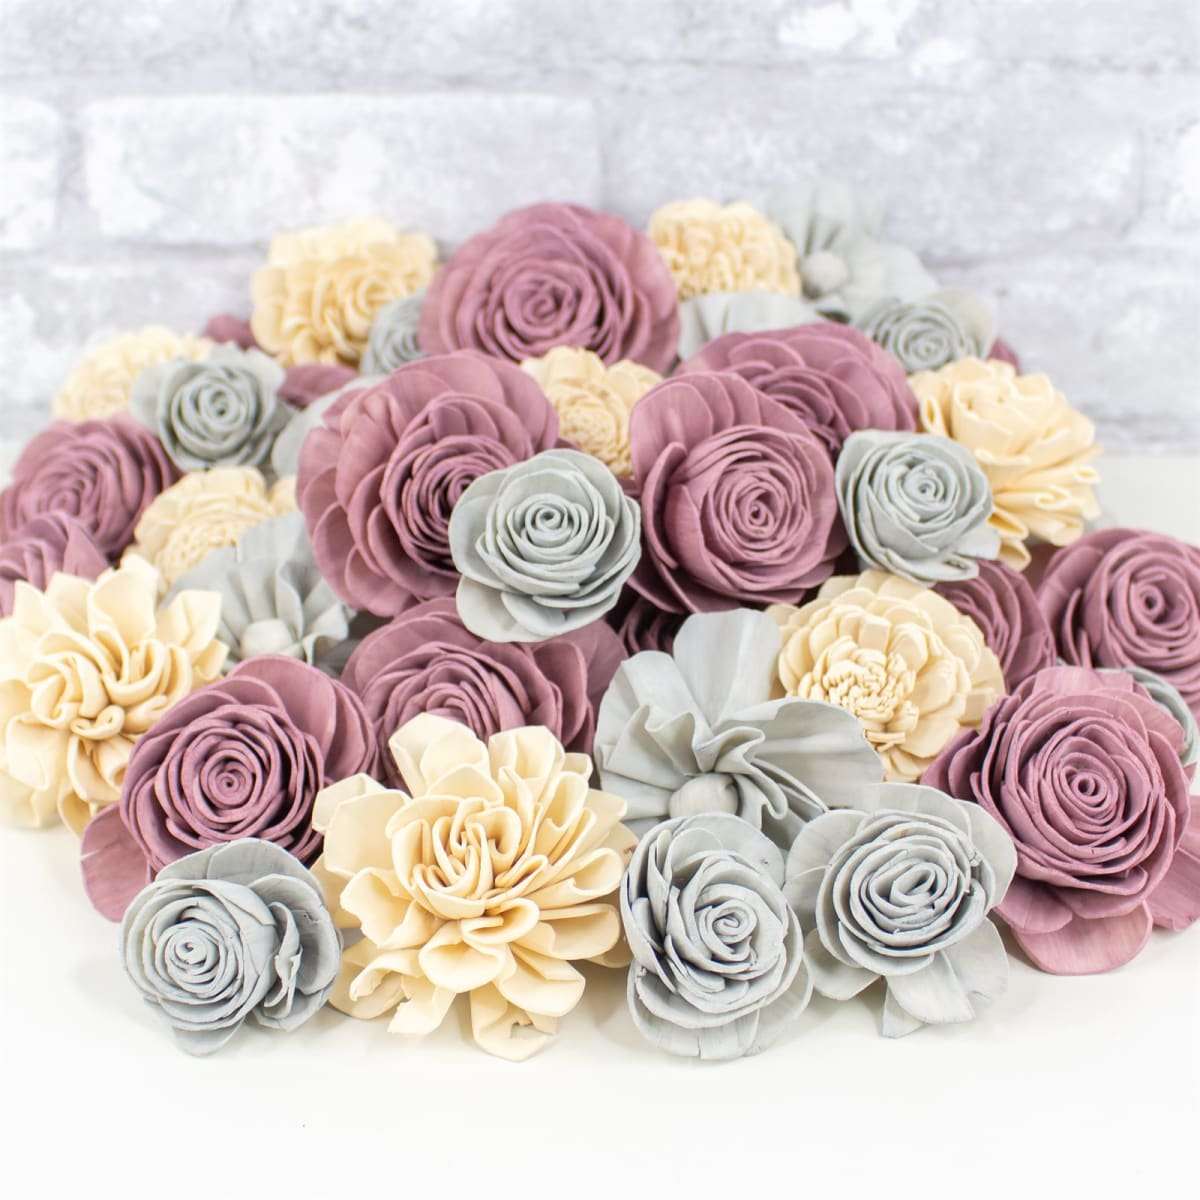 SHABBY CHIC WOOD FLOWERS DIY Craft